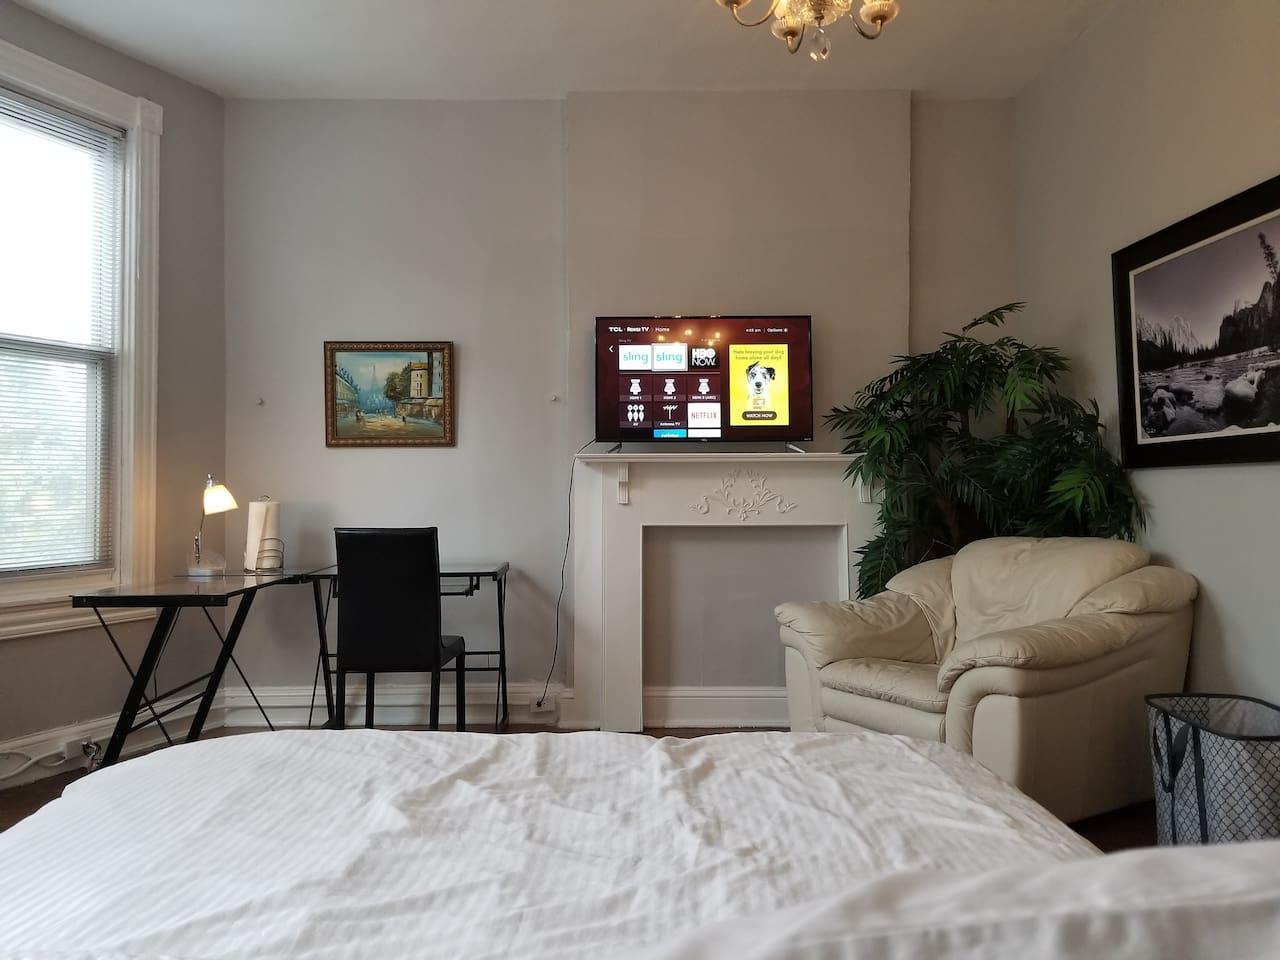 Tastefully furnished and well appointment with a desk, Roku TV and comfortable sofa seat